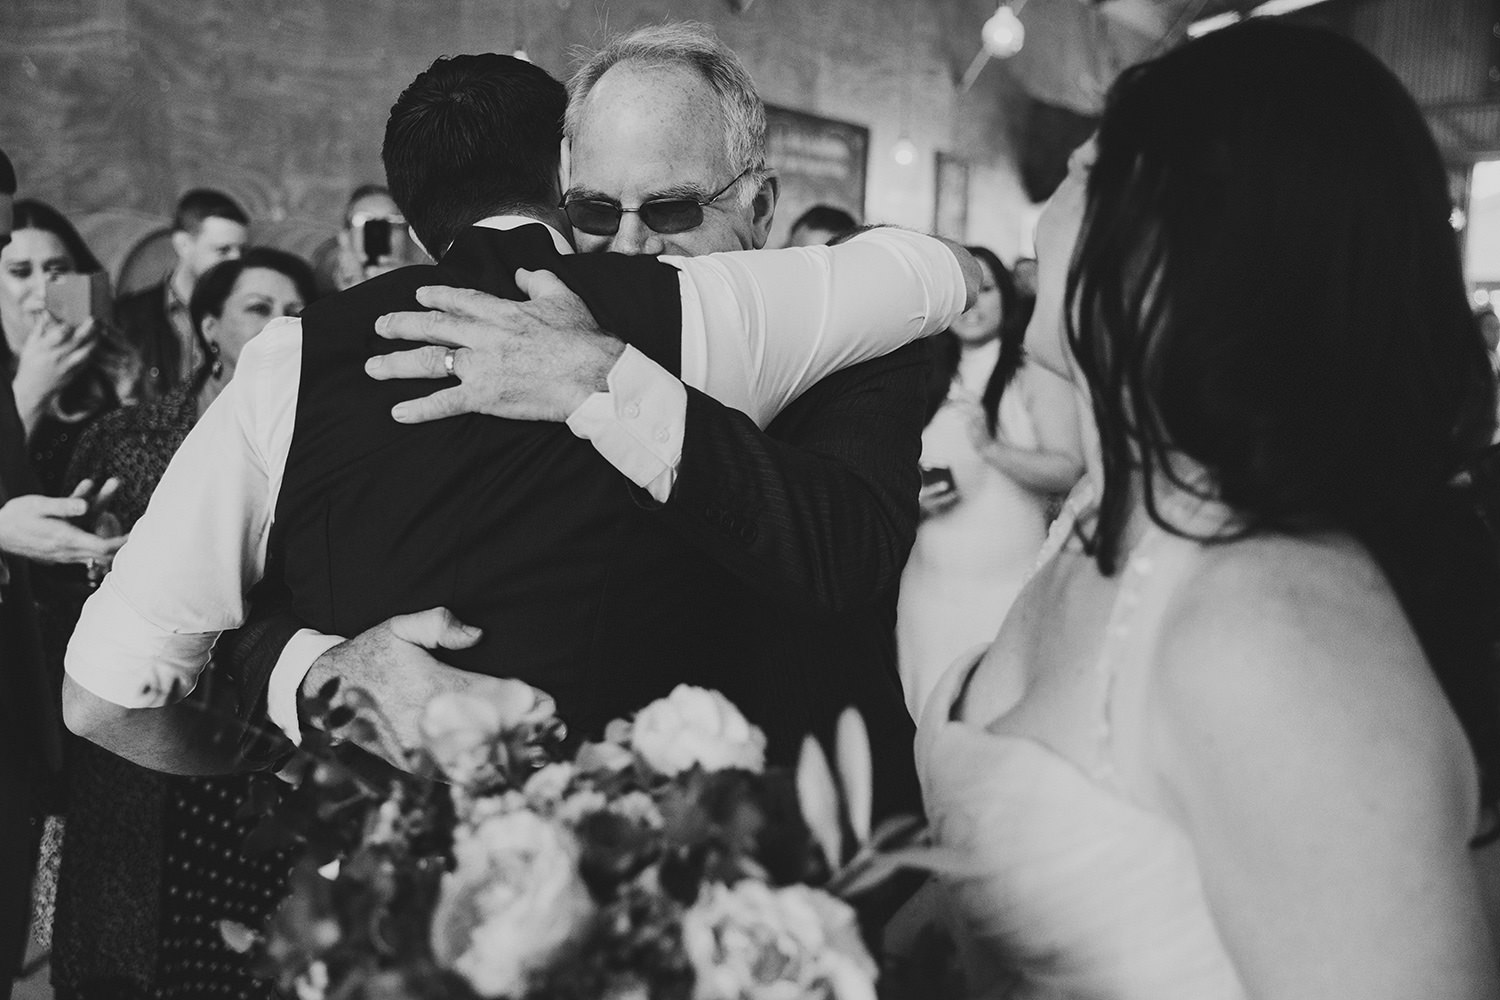 Melbourne_Winery_Wedding_Chris_Merrily086.JPG